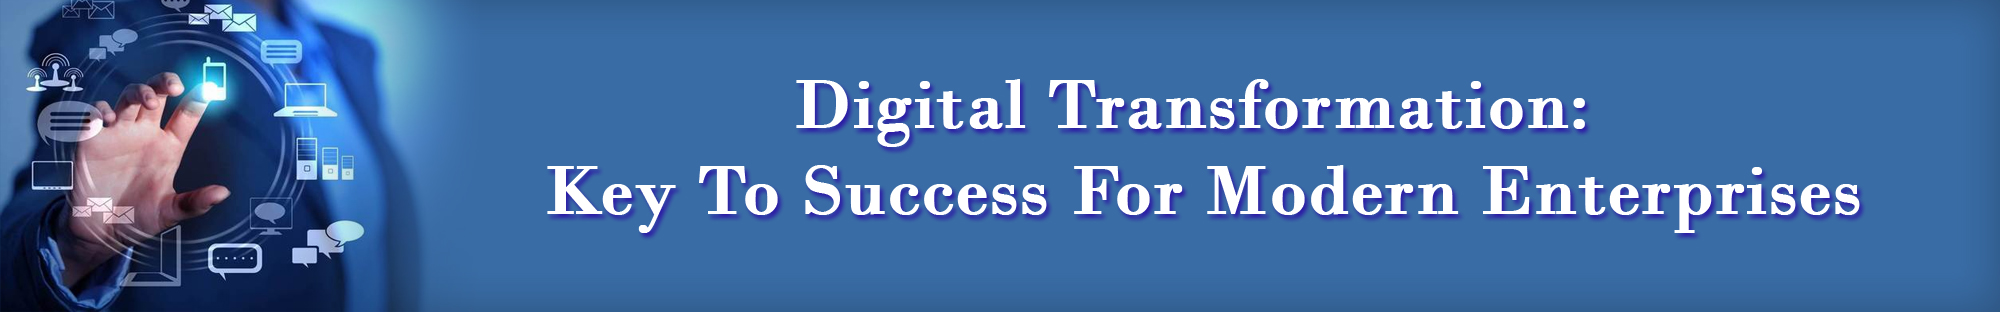 Key-To-Success_digitaltransformation_1